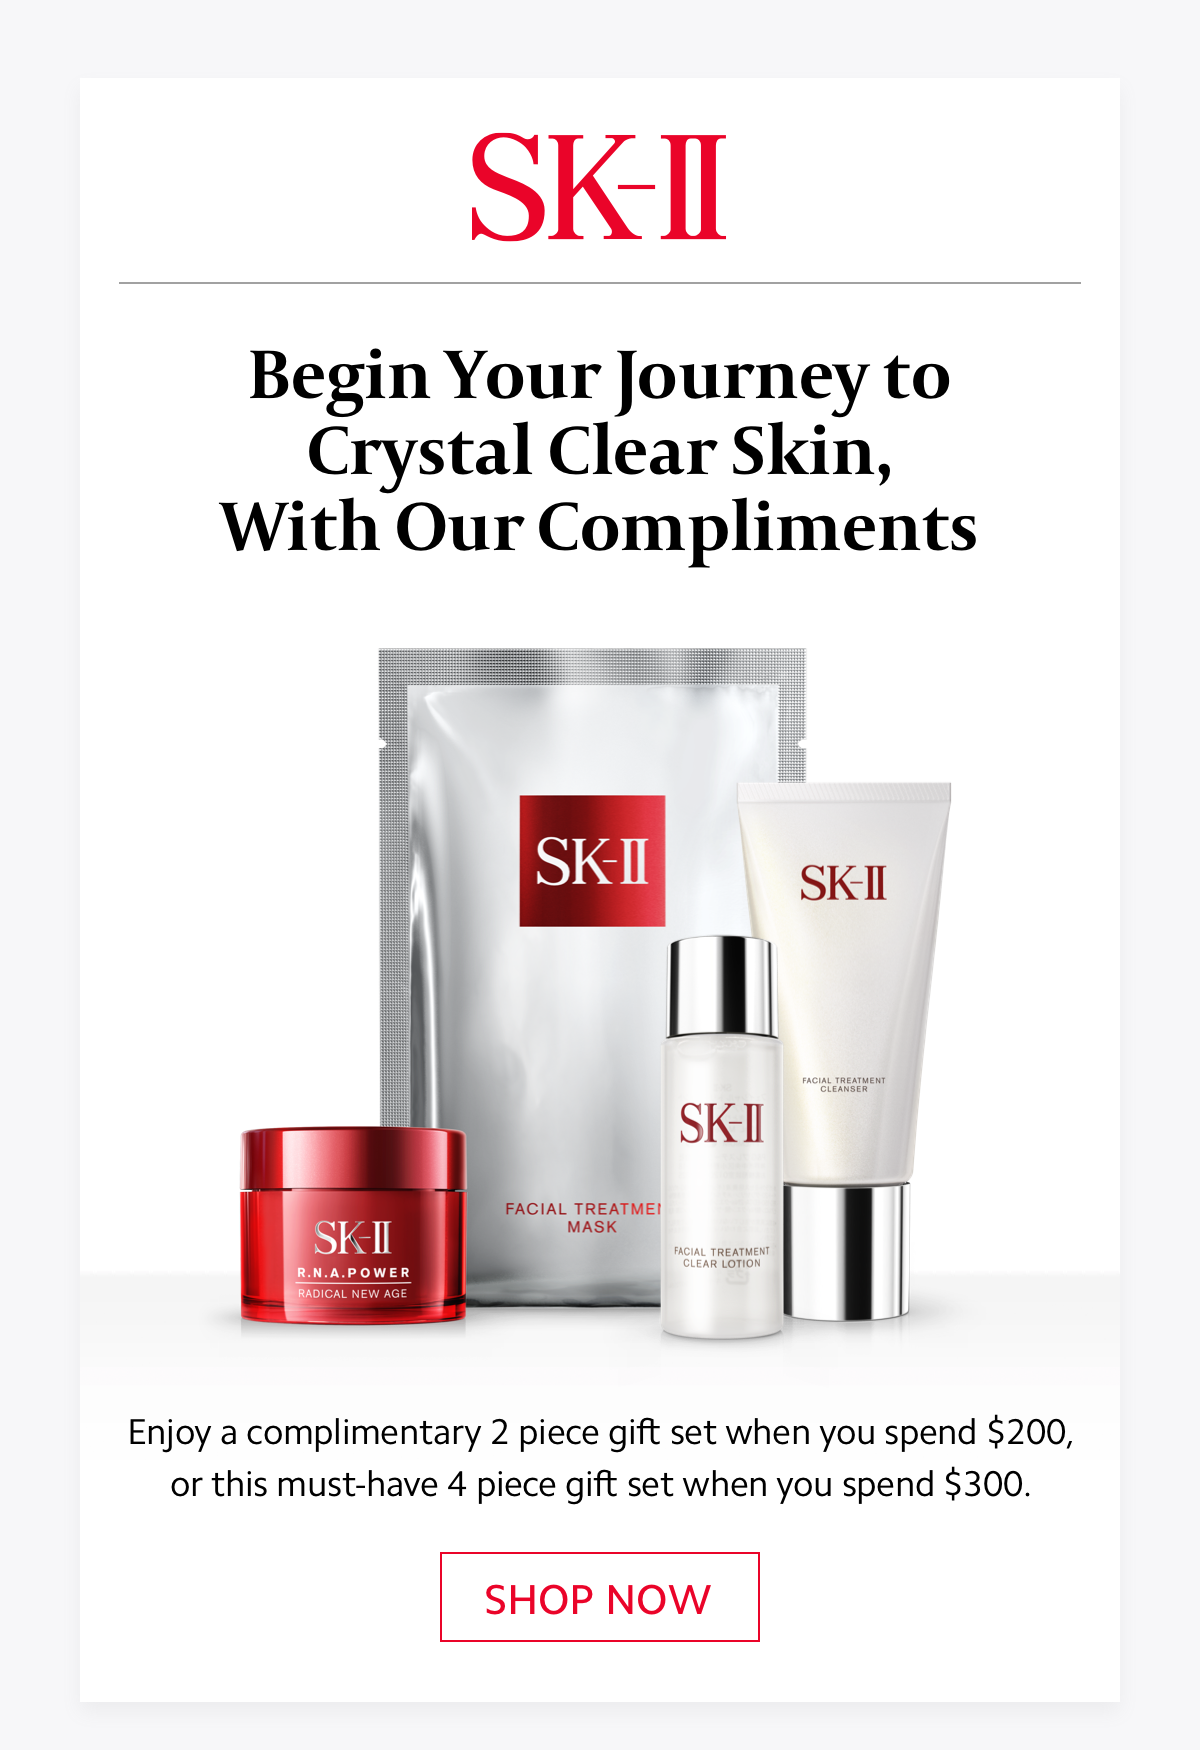 Begin Your Journey to Crystal Clear Skin, With Our Compliments - SHOP NOW